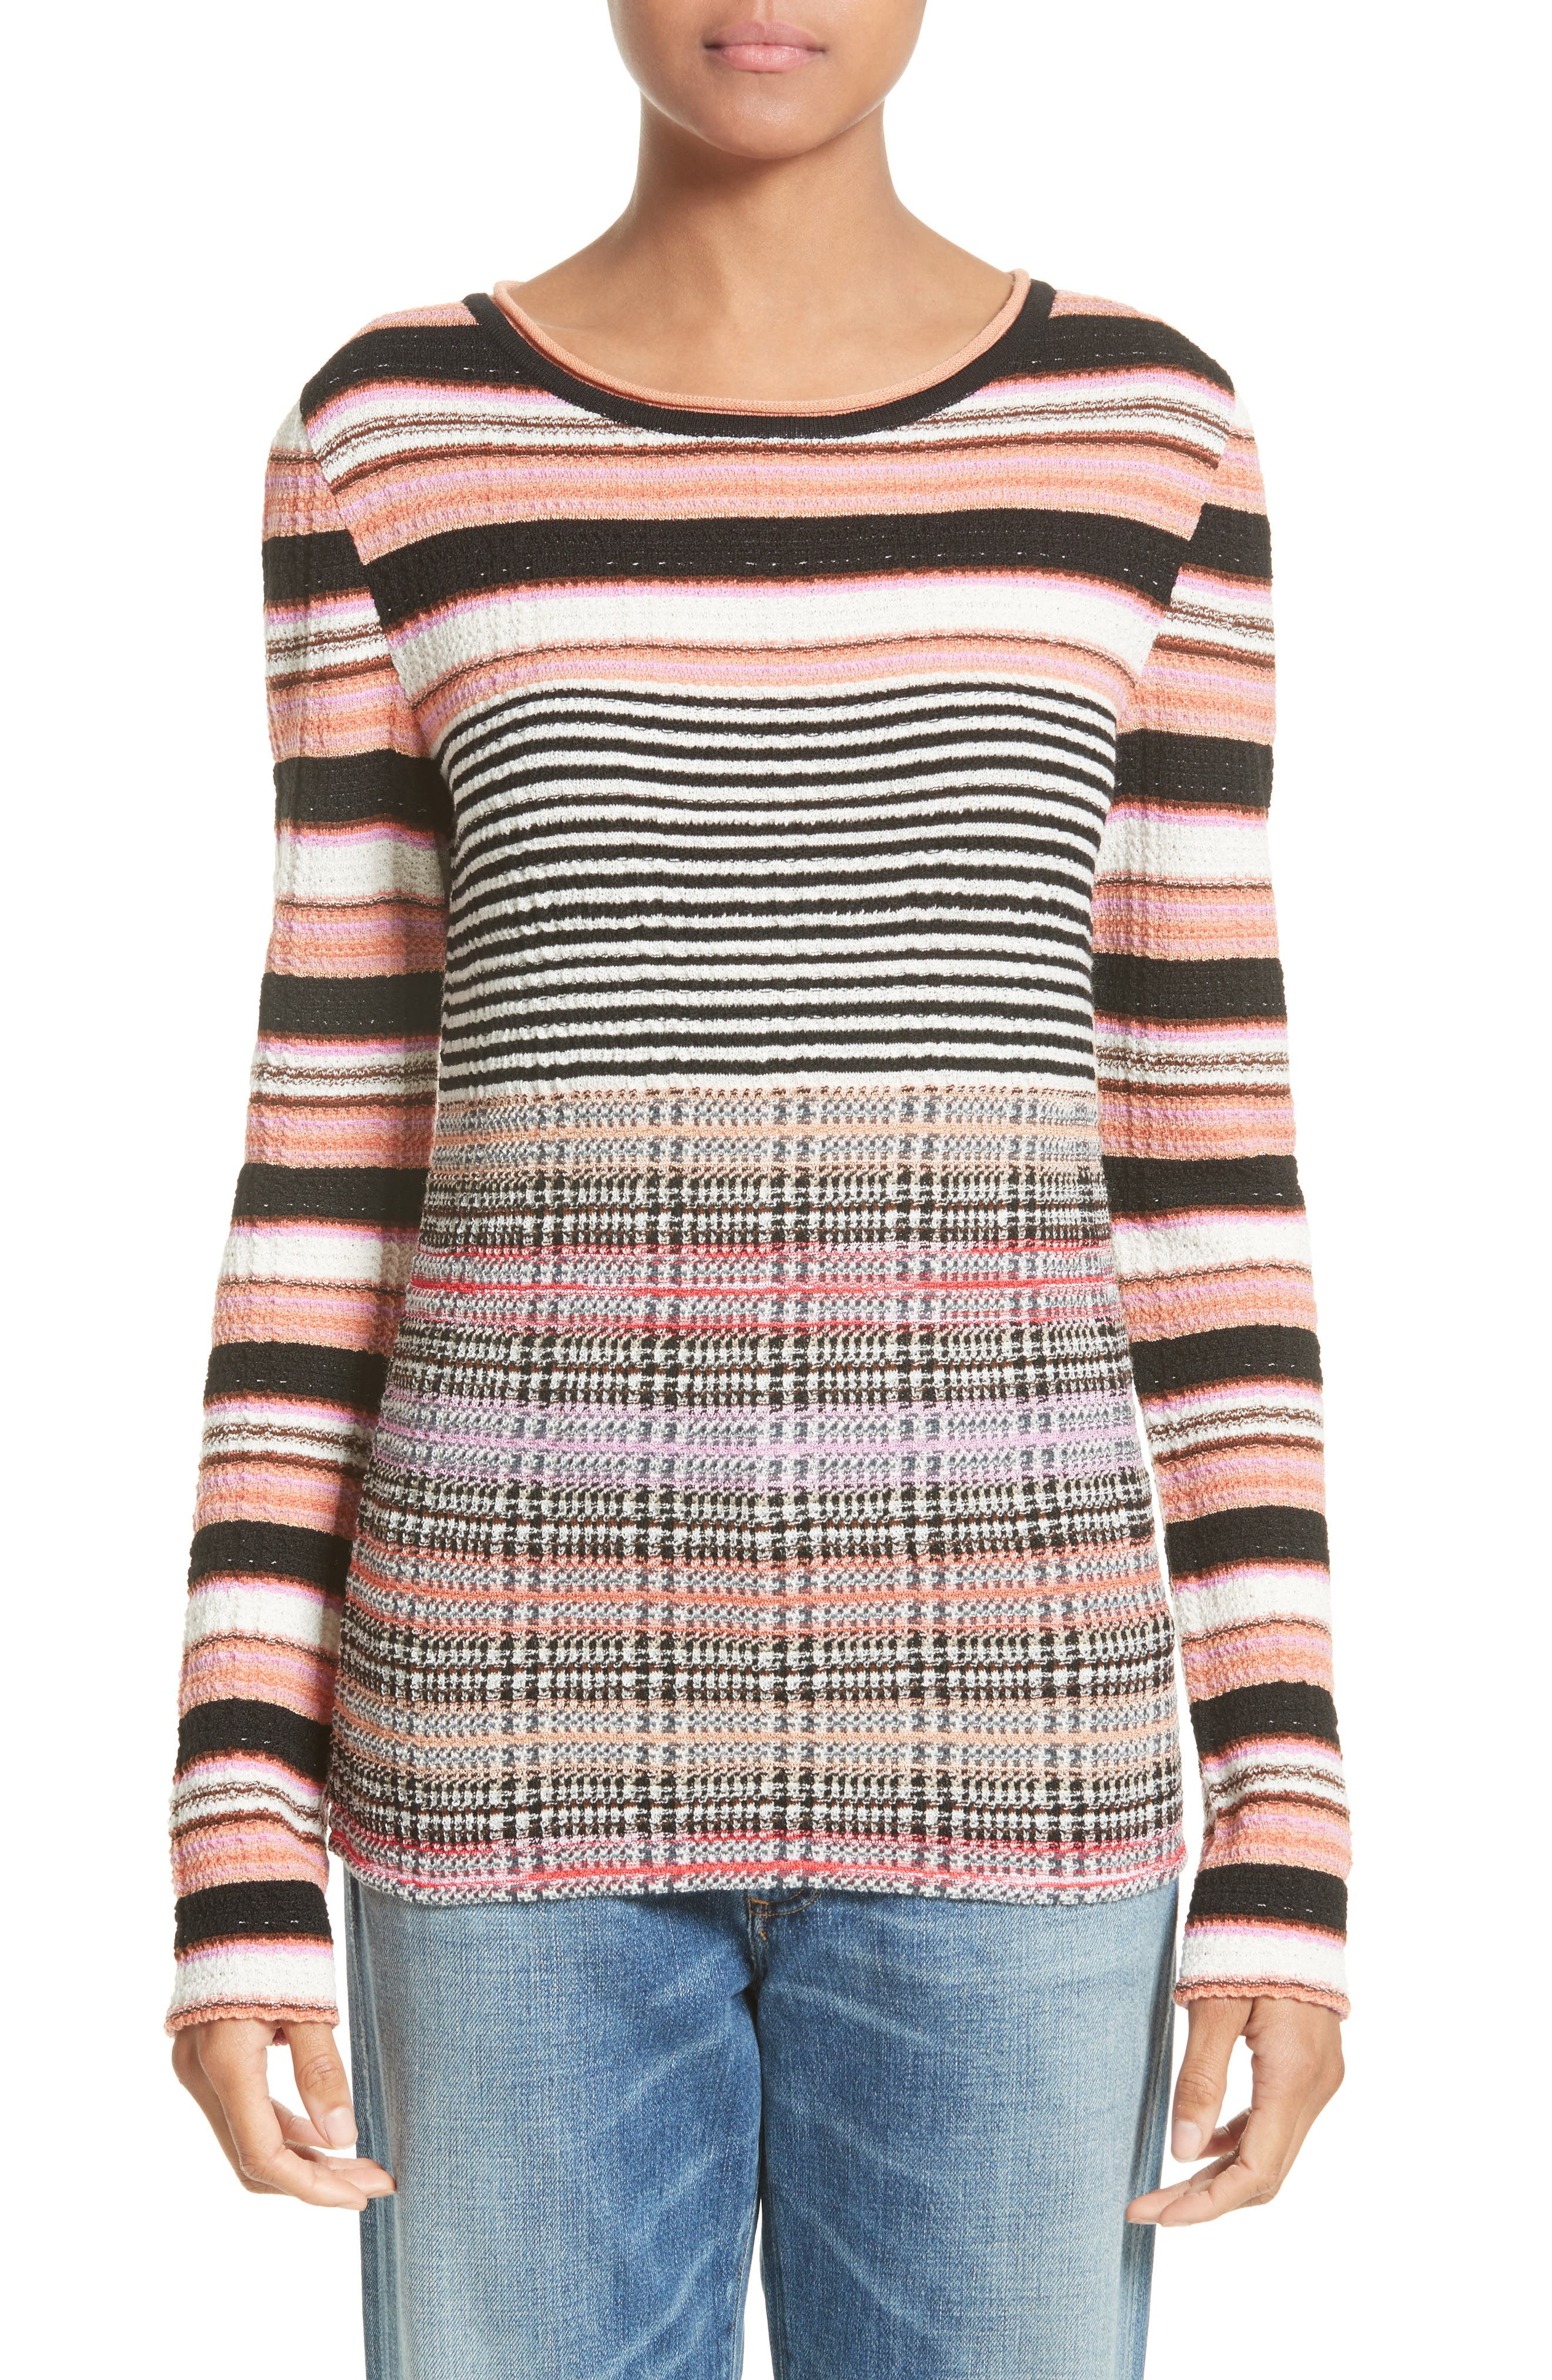 Alternate Image 1 Selected - Missoni Wool Blend Sweater